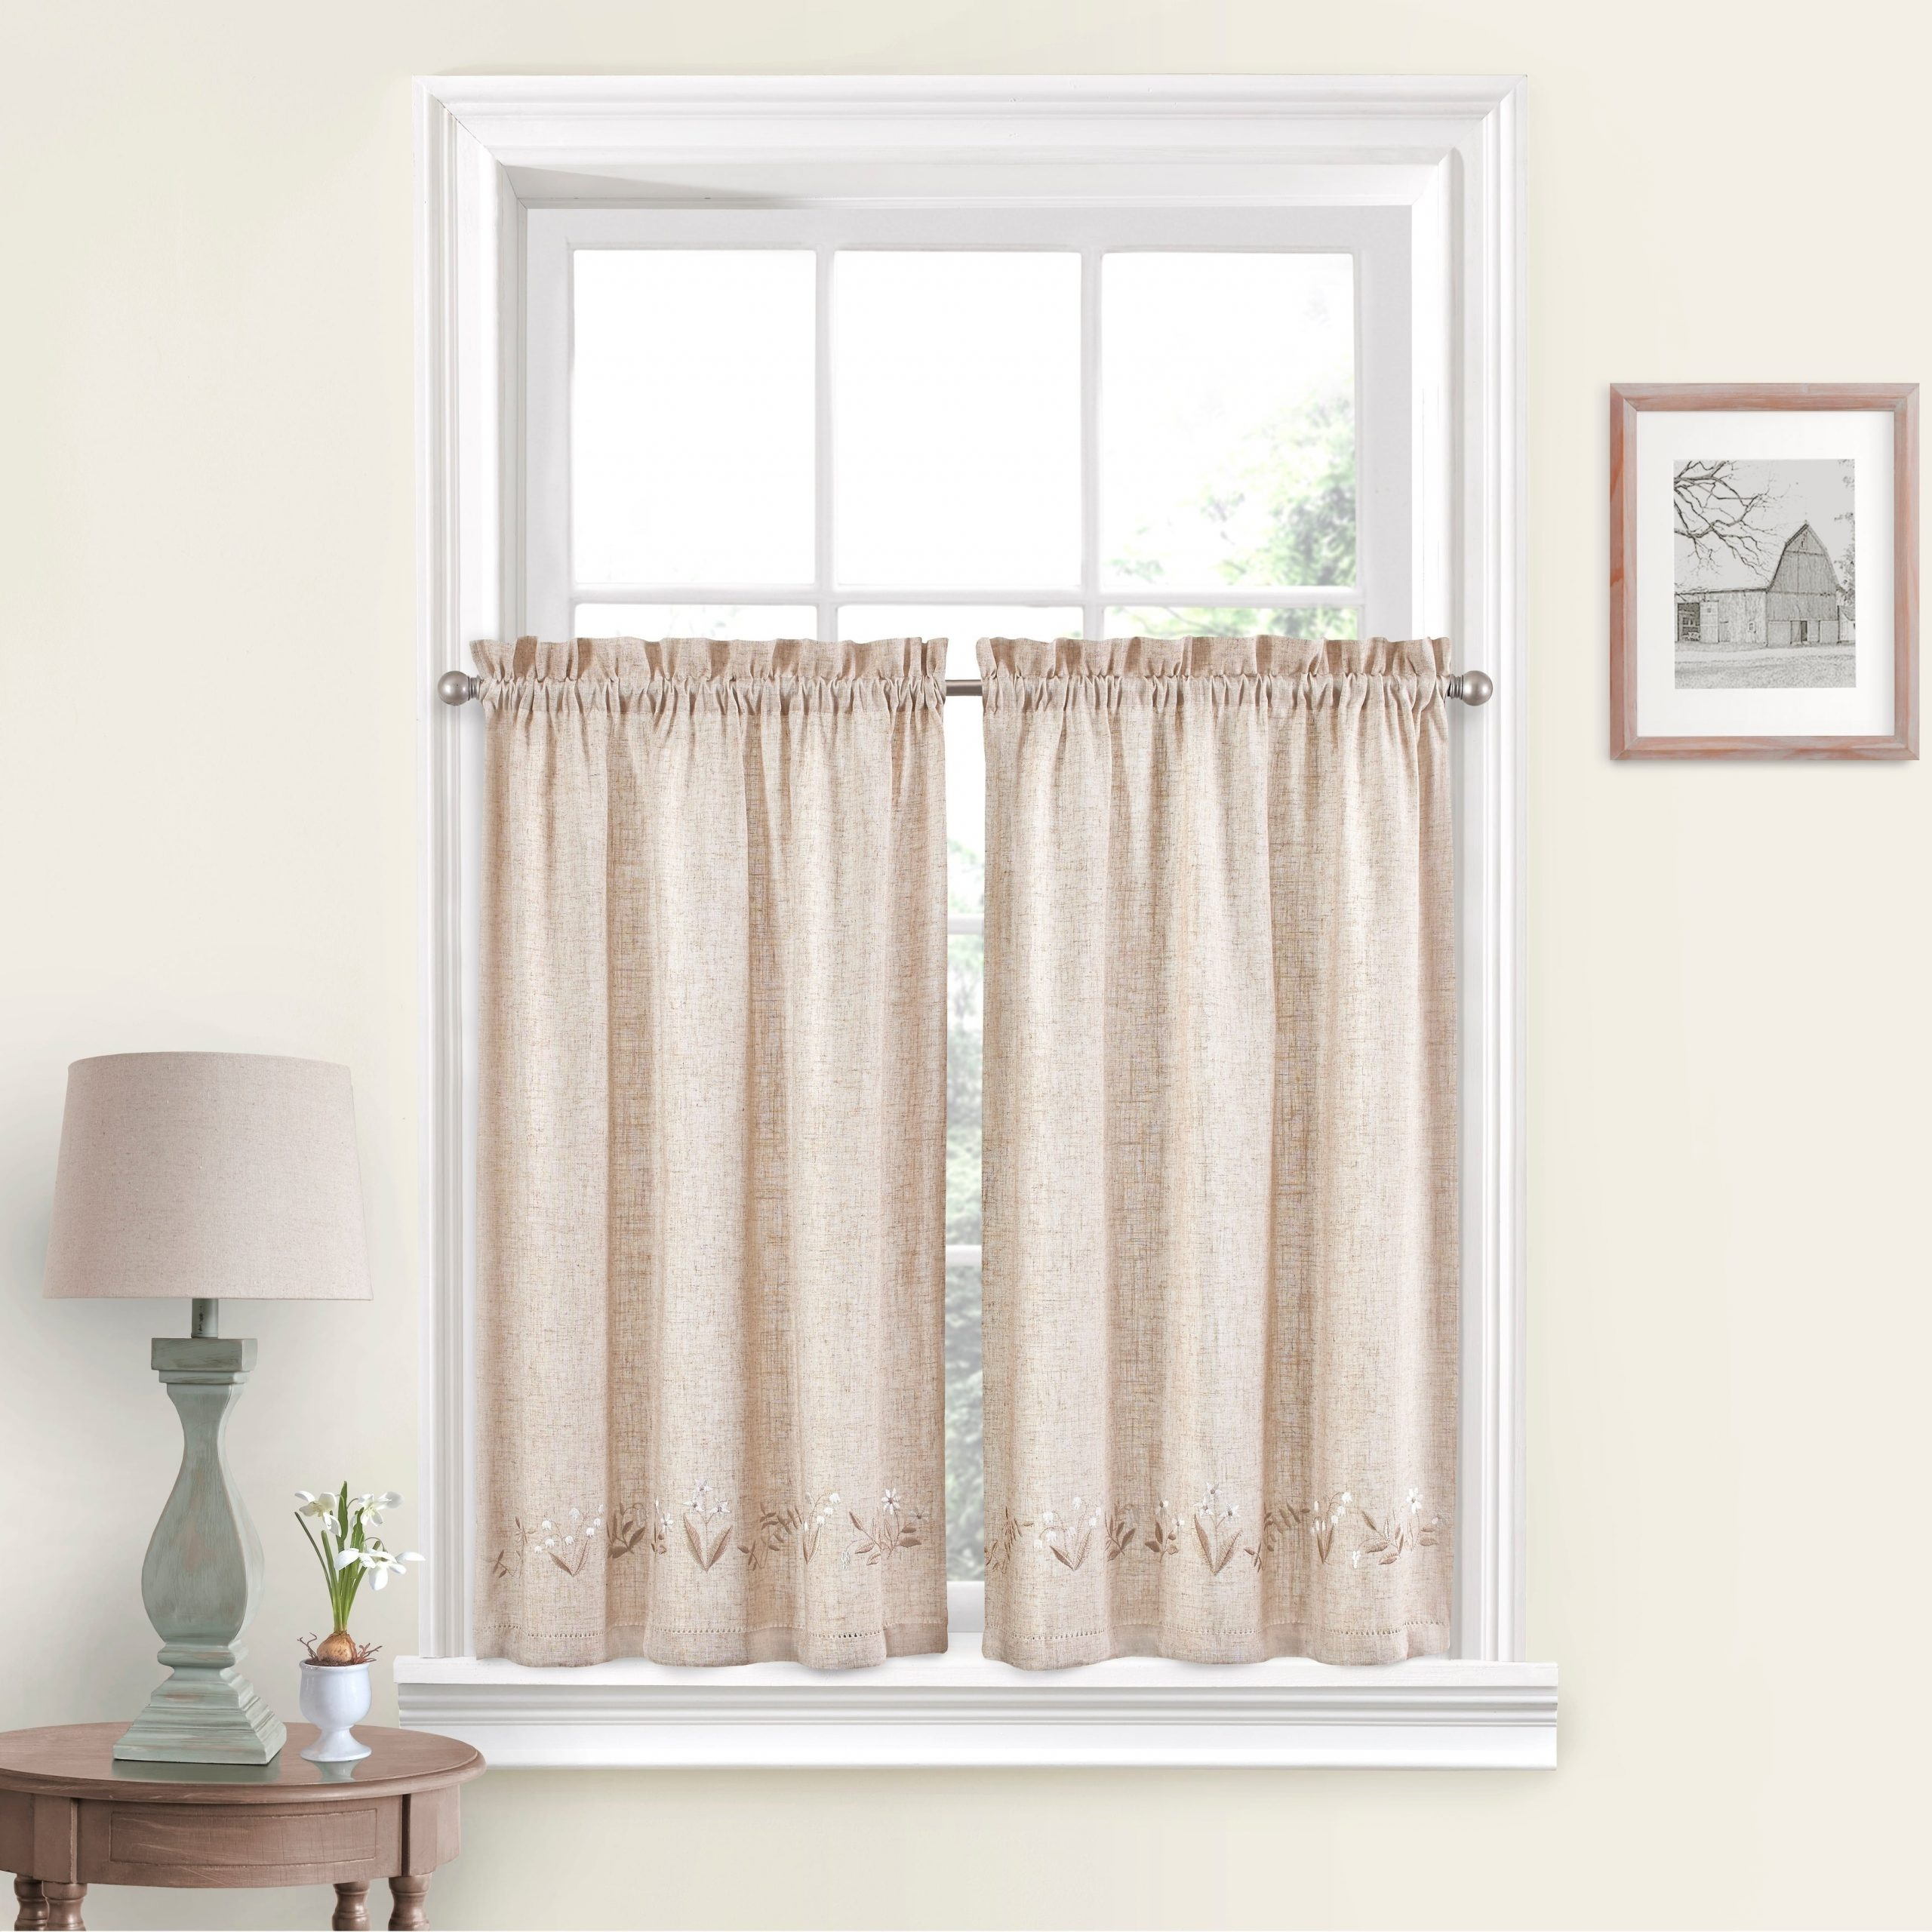 Vue Window Solutions Lily Of The Valley Pair For White Tone On Tone Raised Microcheck Semisheer Window Curtain Pieces (View 4 of 20)